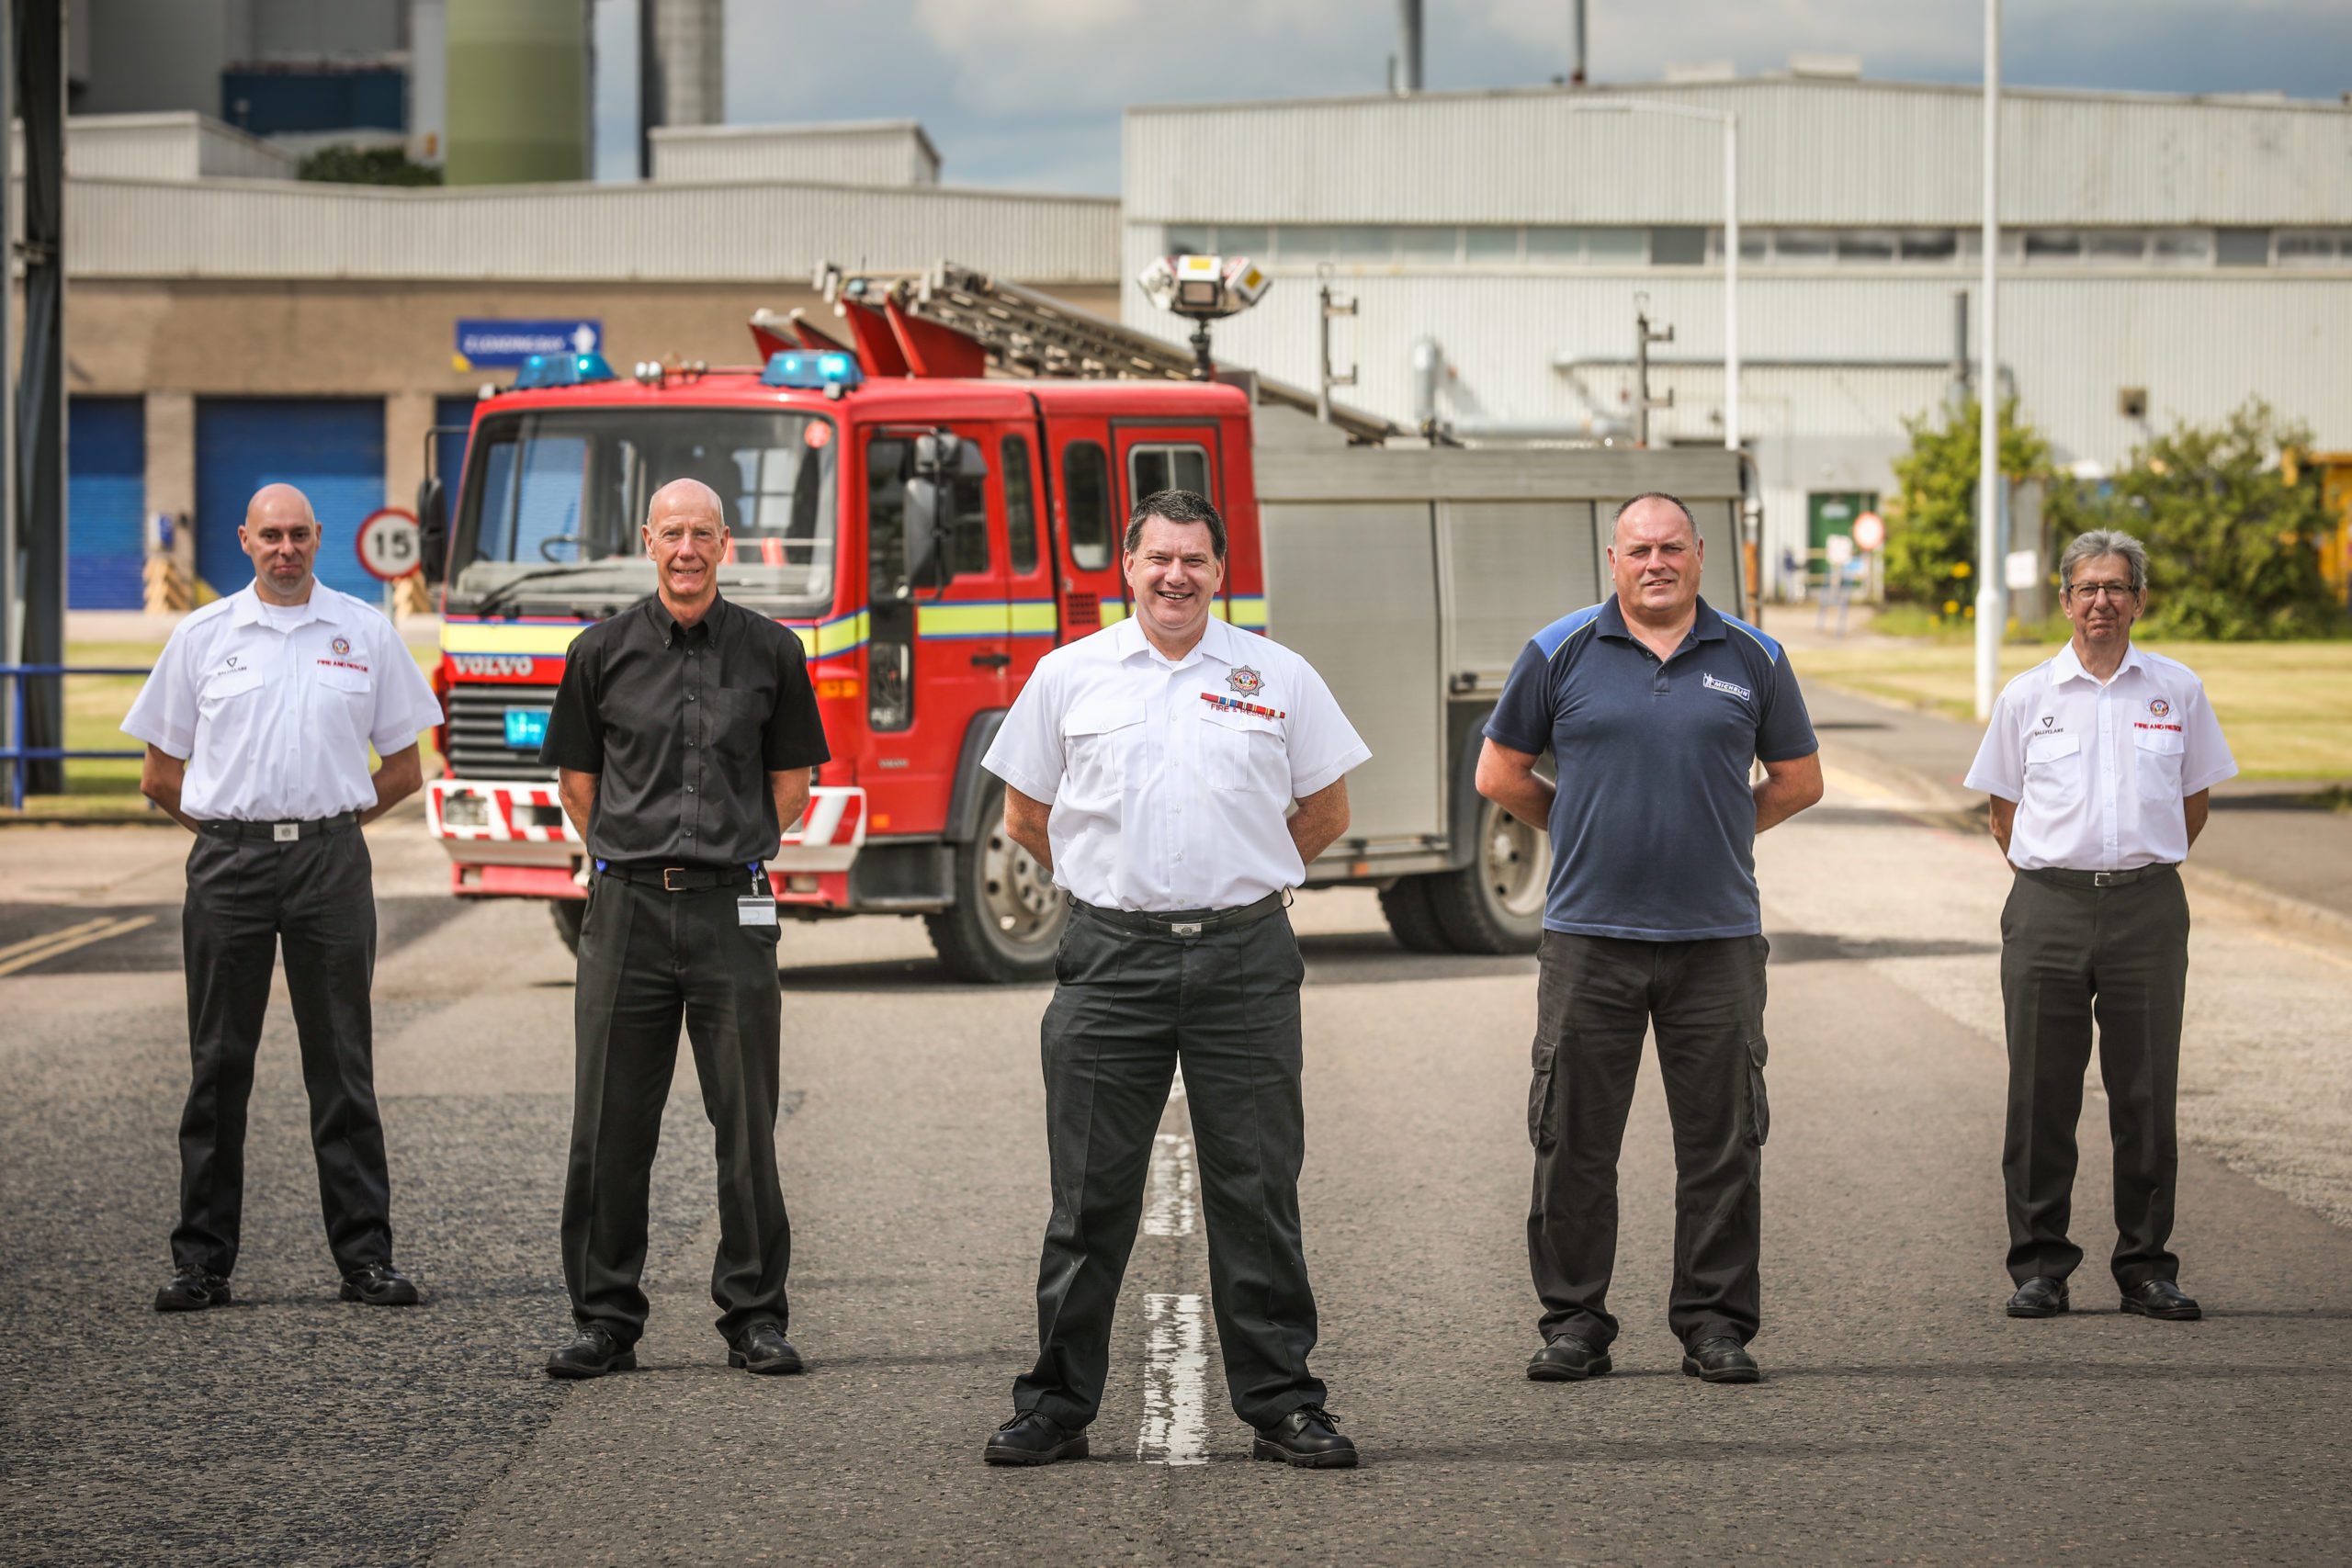 From left: Gary Johnstone, of IFRA, Geoff Petrie, who's in charge of Michelin's fire and security, David Kay, director of IFRA, Michelin security officer Steve Blaney and former Michelin employee and member of IFRA, Alan Kay, with one of the engines.